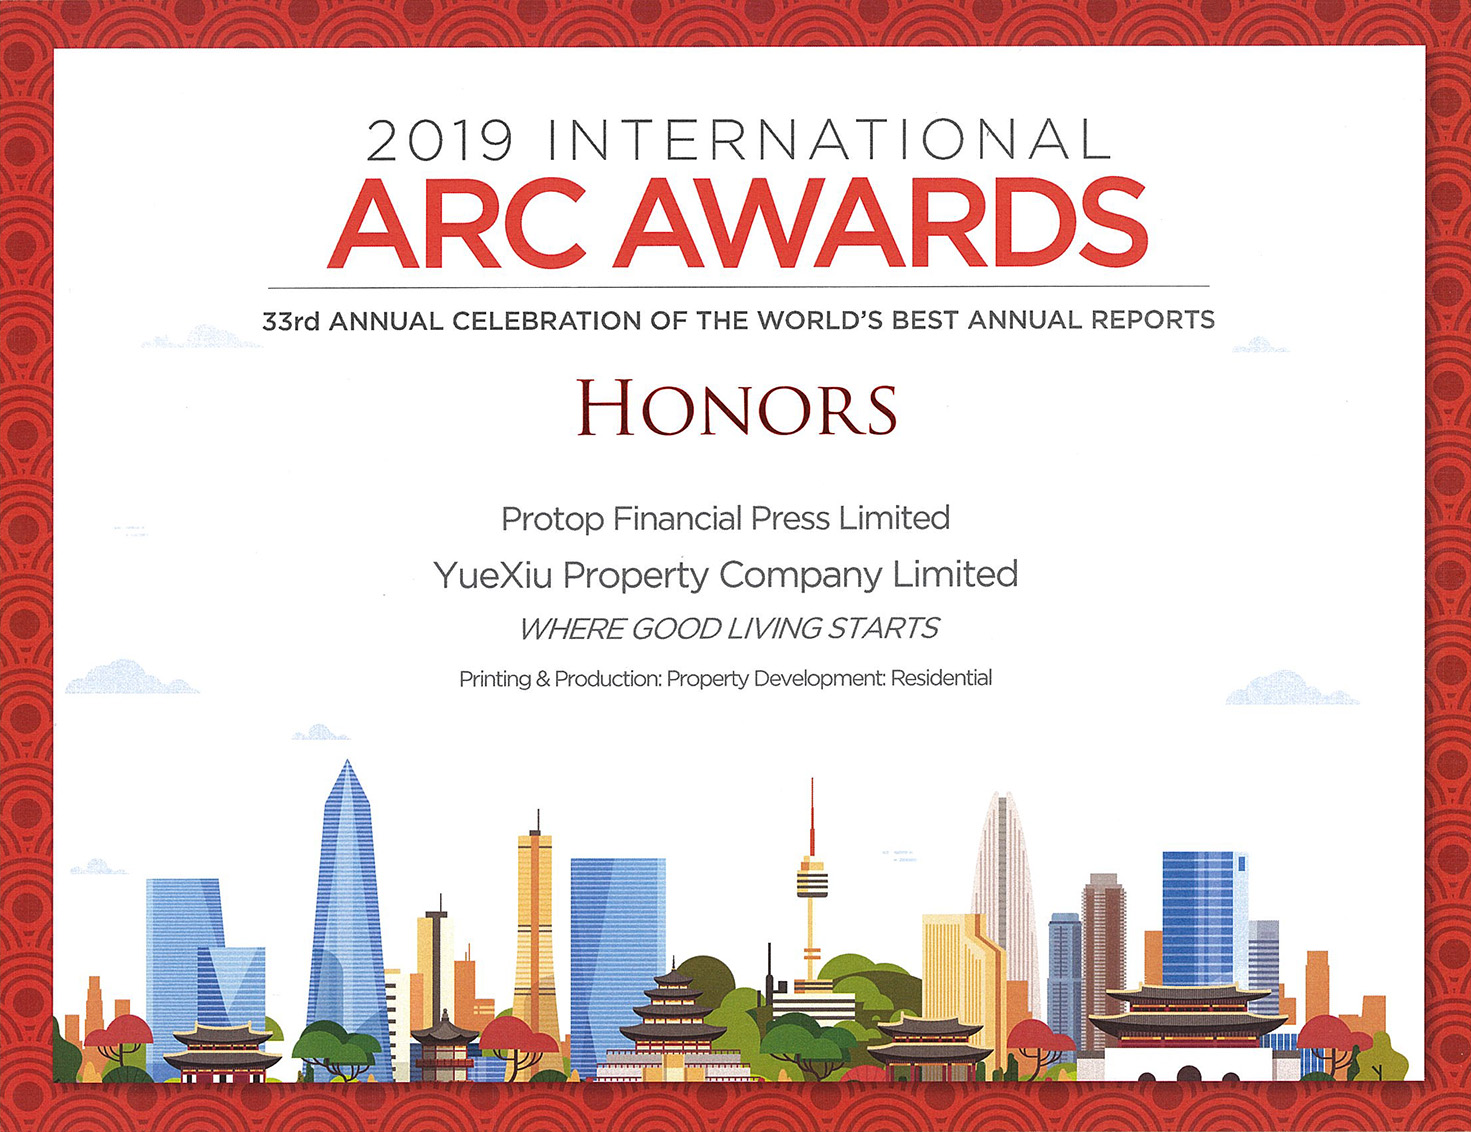 YueXiu Property Company Limited – 2019 ARC AWARDS HONORS Printing & Production: Property Development: Residential